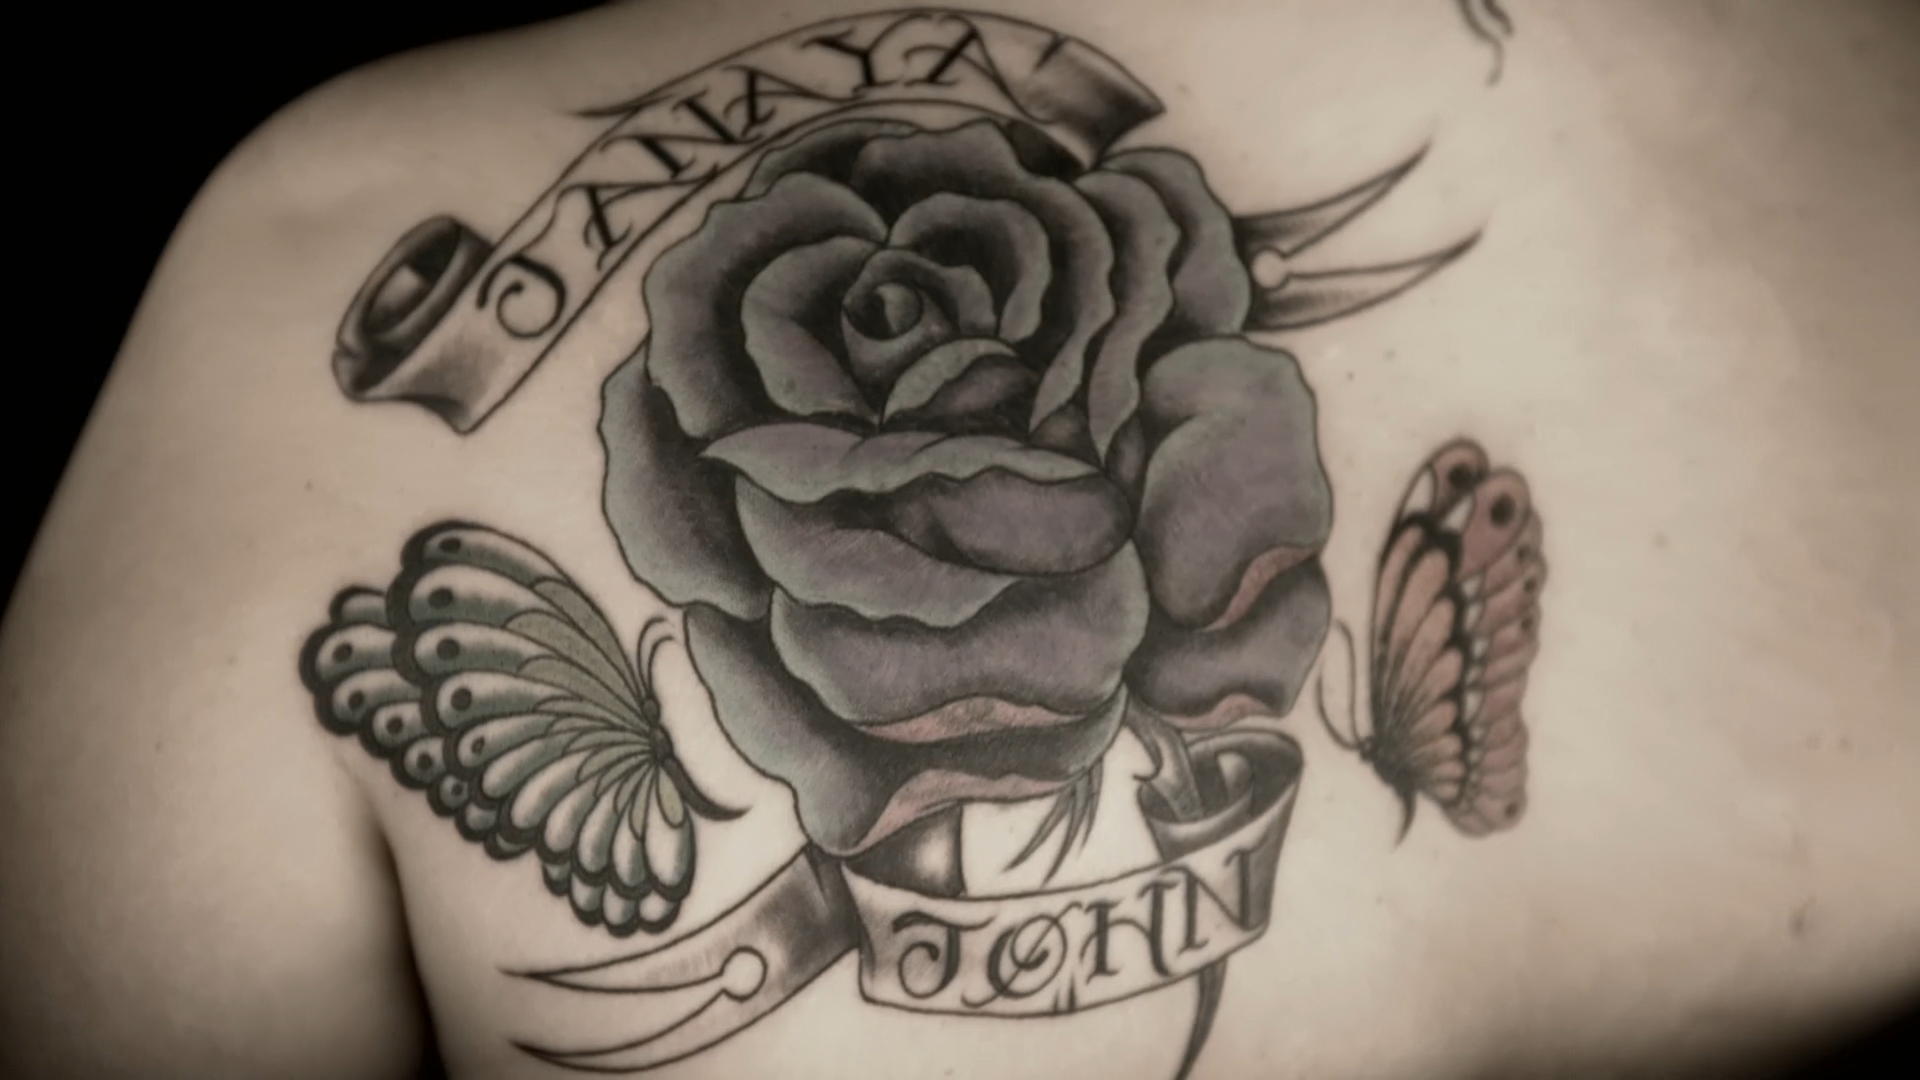 The Cover Up Tattoo That Didnt Cover Up